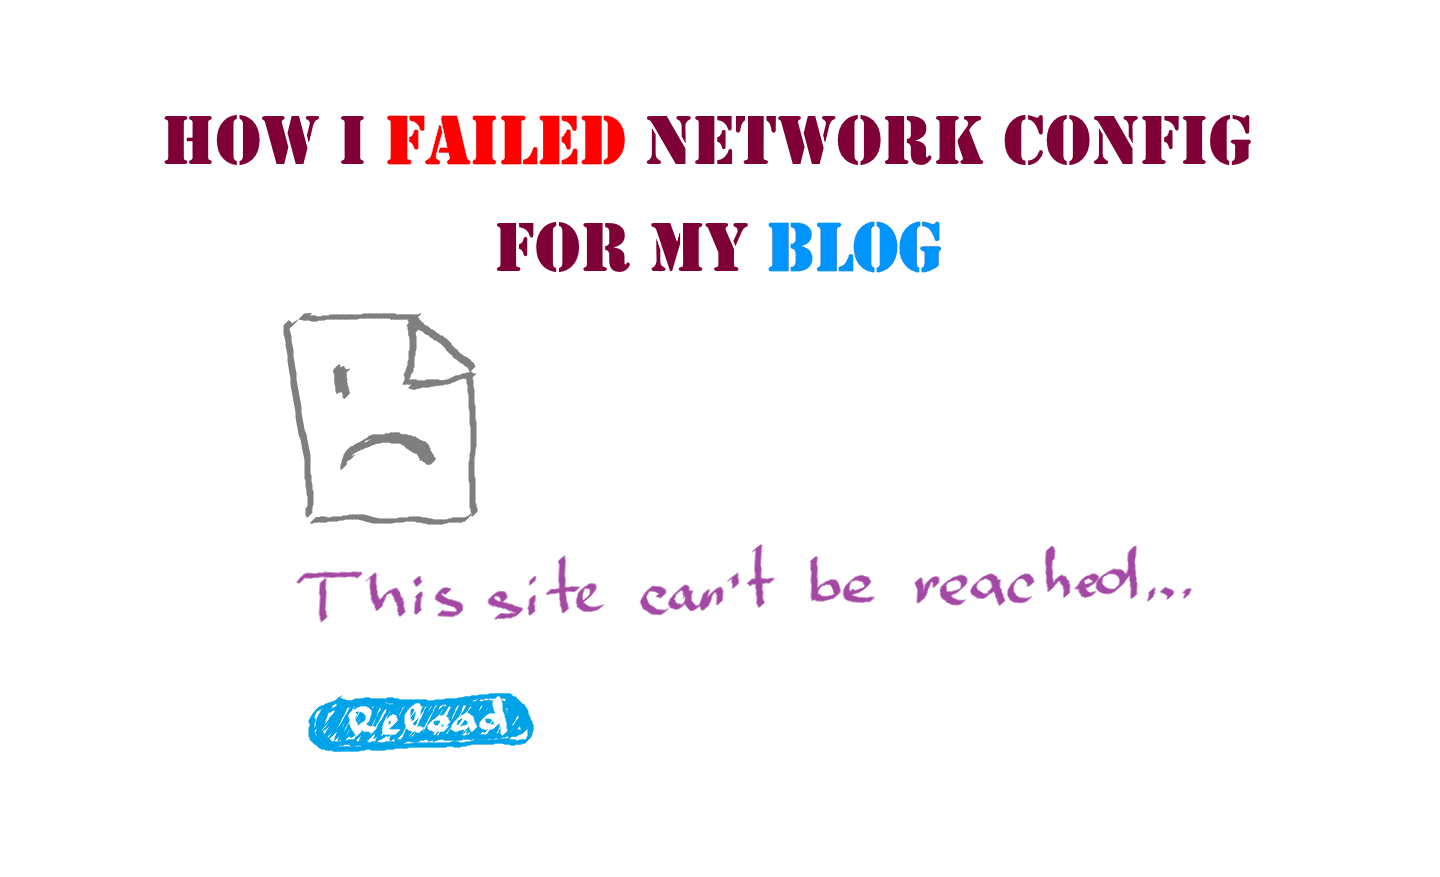 How I failed the network configuration for my blog